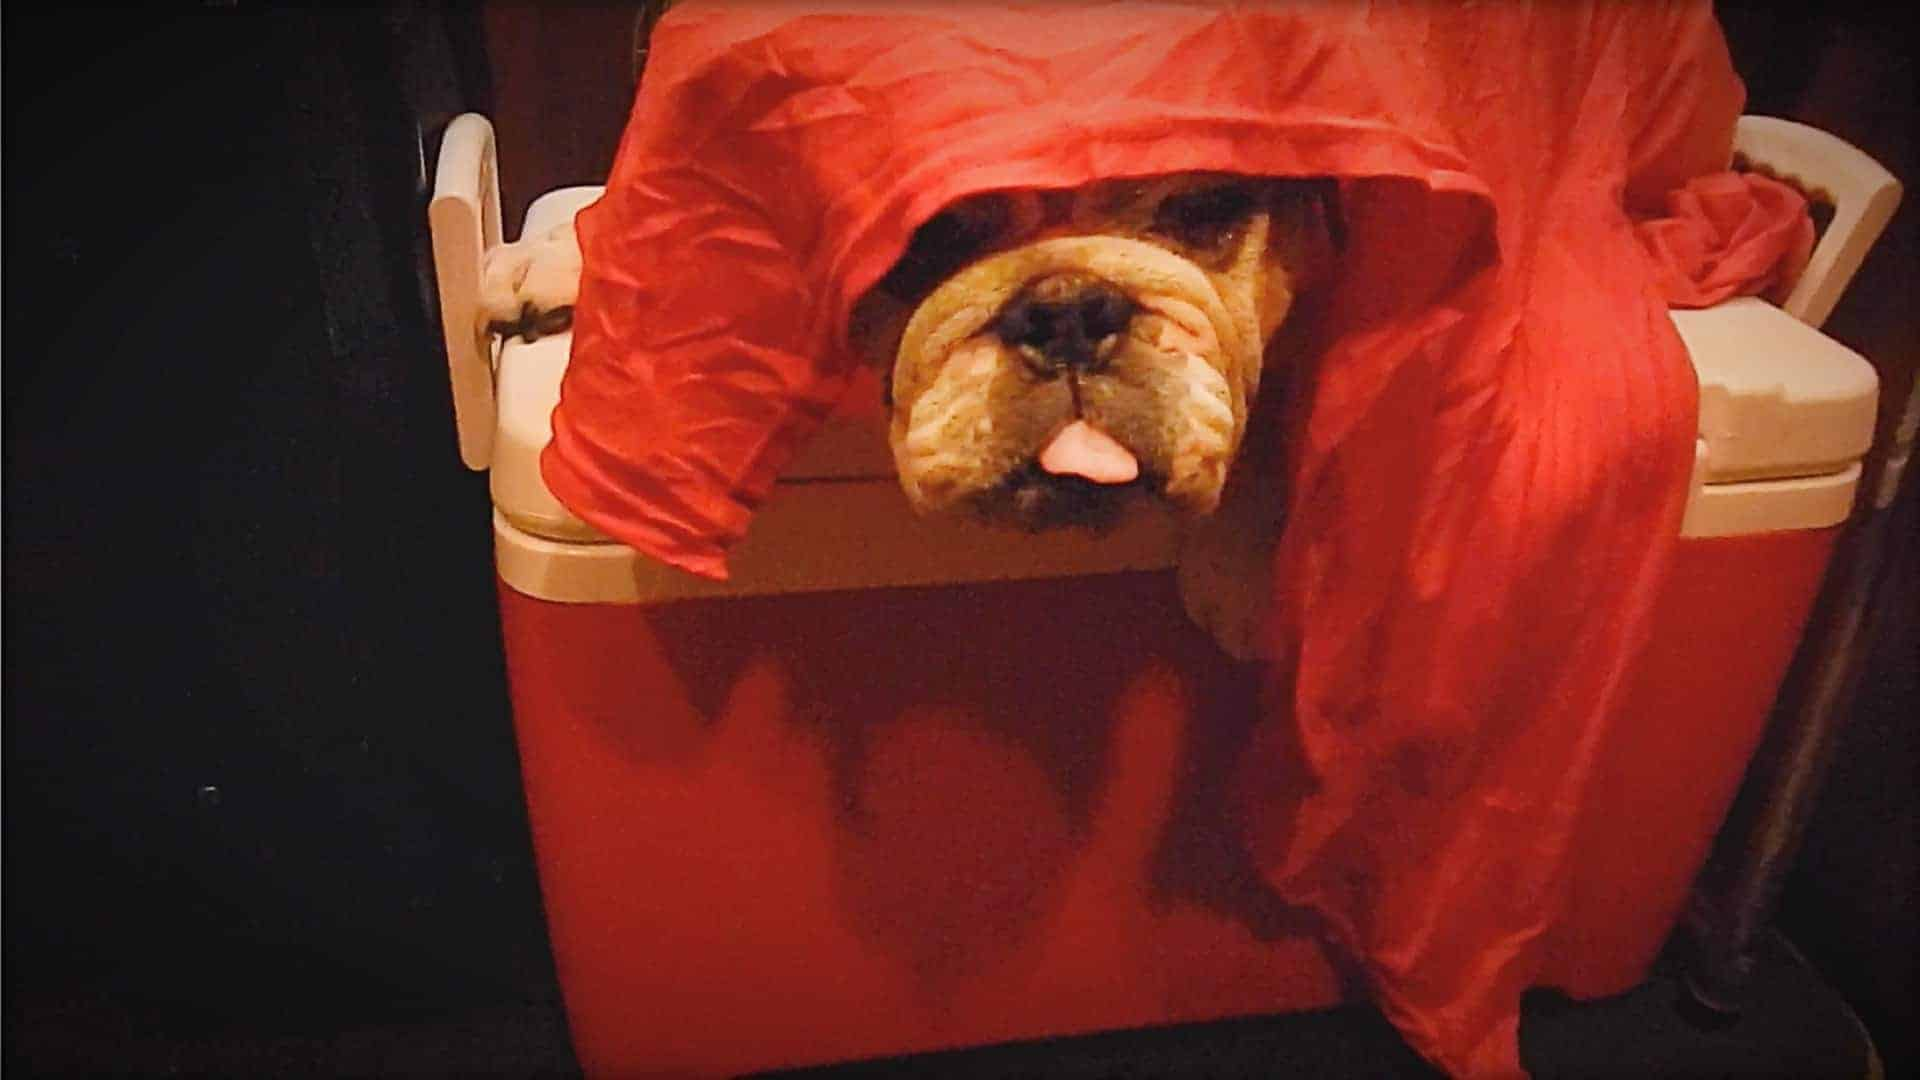 The image shows a close-up of Ooby, Emily Moran Barwick of Bite Size Vegan beloved bulldog. Ooby is barely visible. His snout is just poking out from under a blanket. He appears to be lying across a cool box.